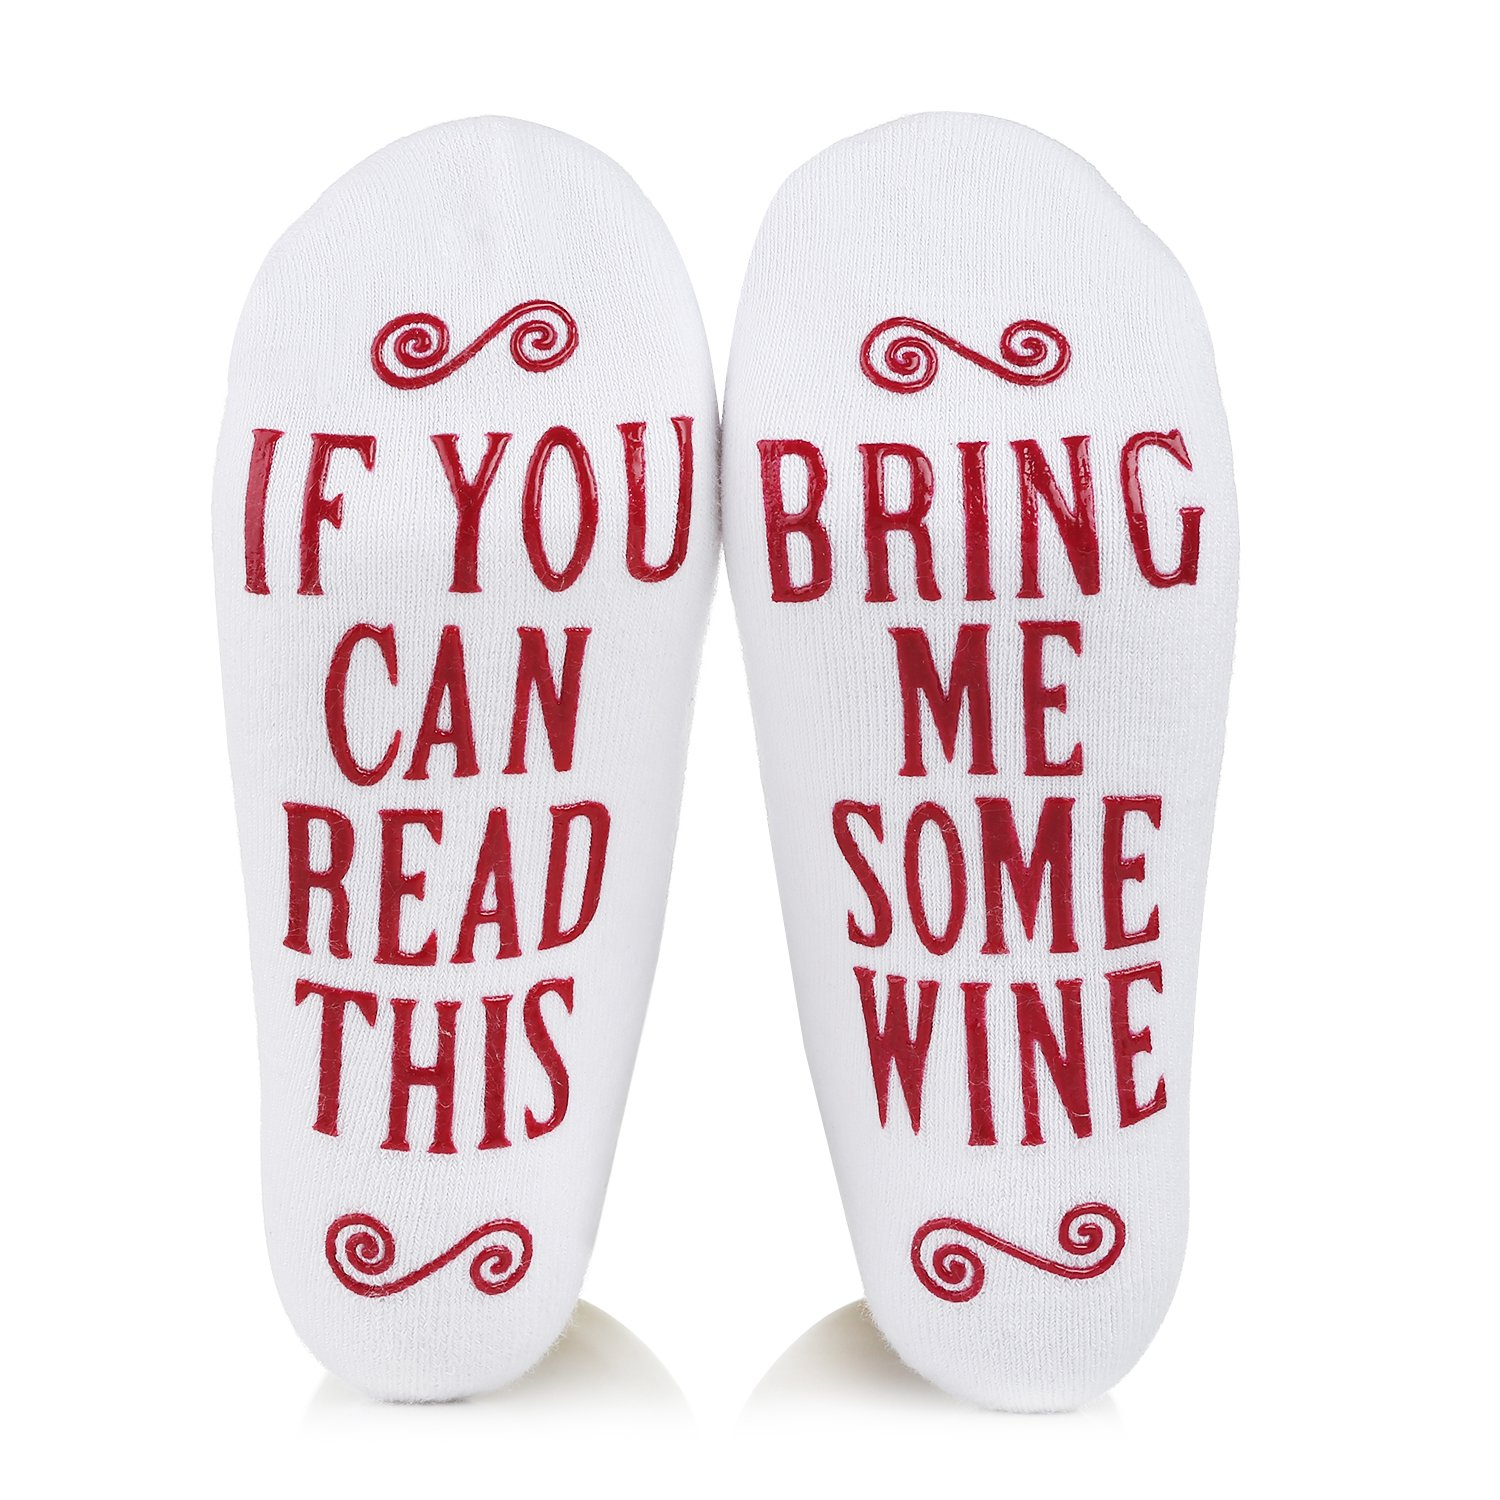 Wine Socks with Funny Words If You Can Read This, Valentine's Day, Christmas, Birthday, Stocking Stuffers for Women,Gifts for Mom Her Wine Lover Wife Friends (white)